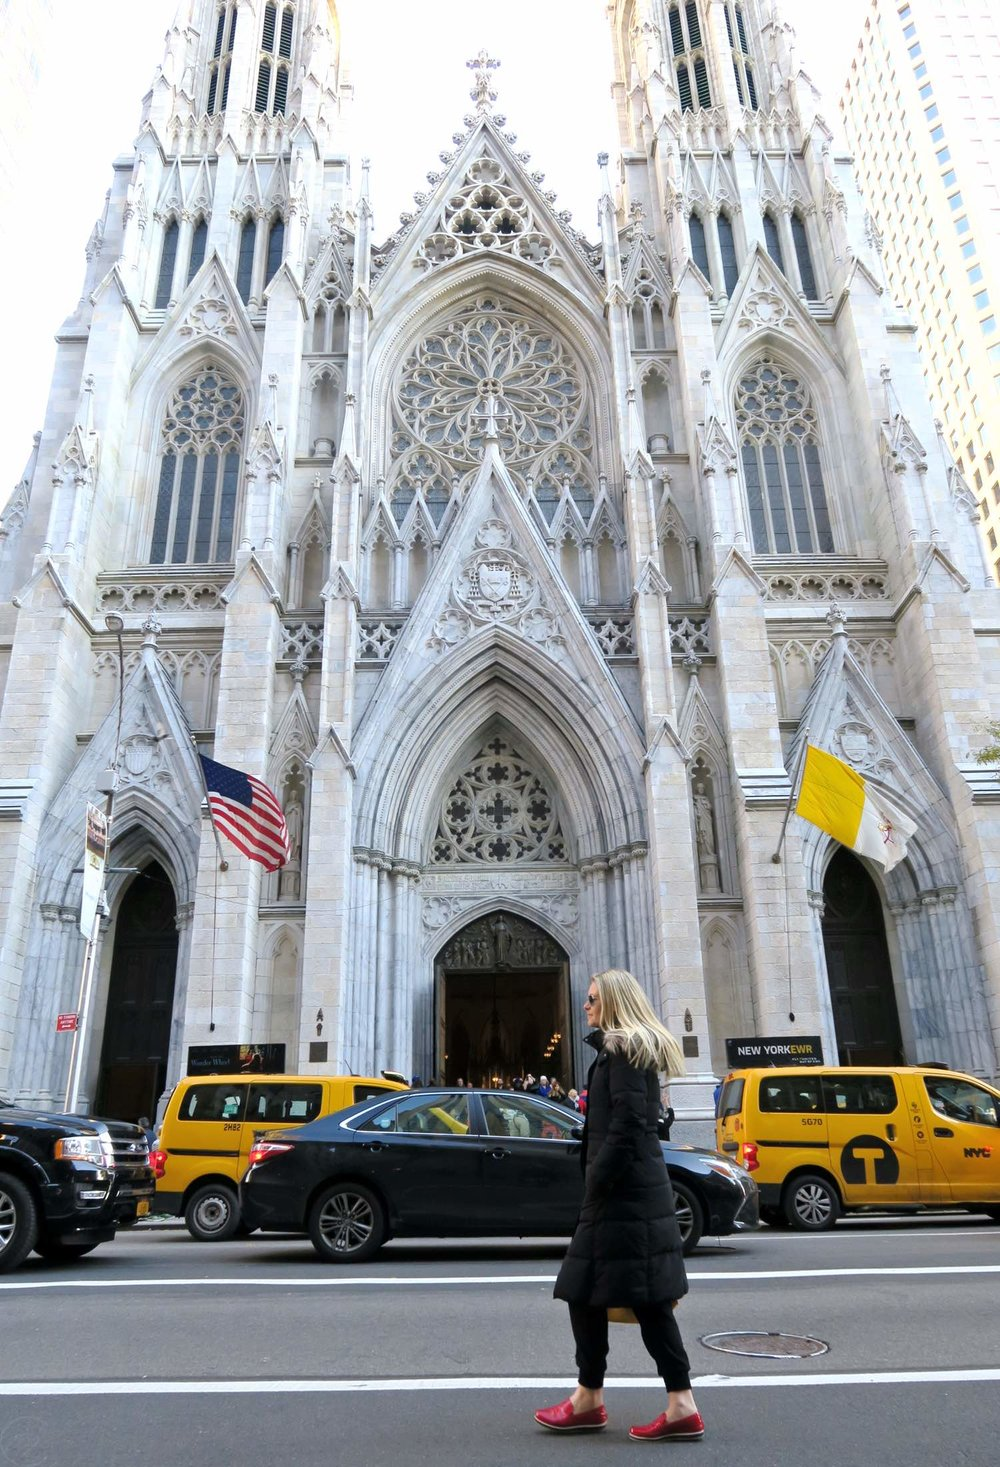 famous-landmarks-tv-shows-movies-nyc-character-32-c32-new-york-manhattan-travel-st-patricks-cathedral